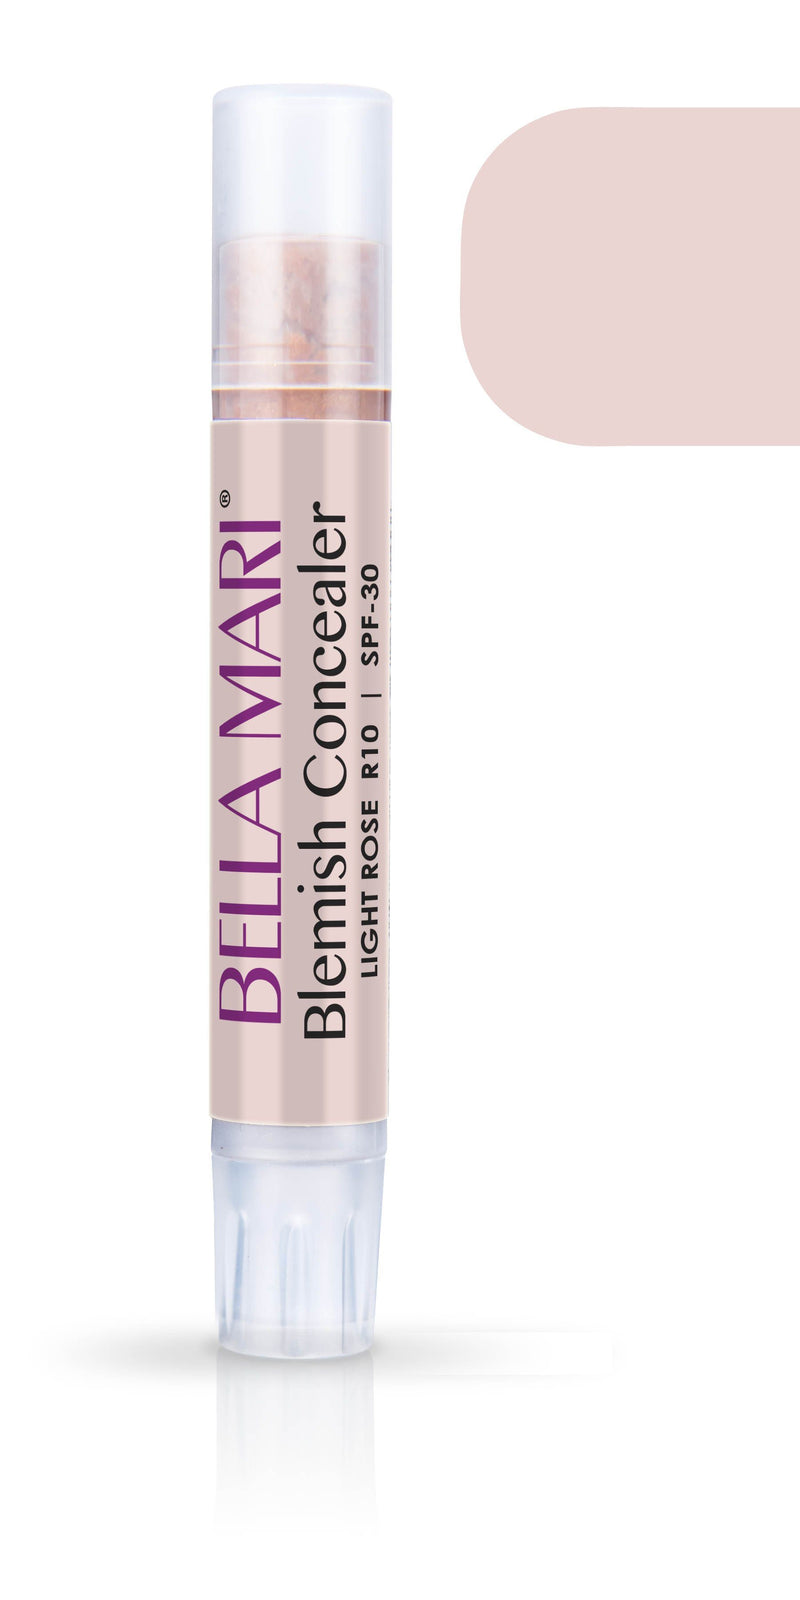 Bella Mari Natural Blemish Concealer Stick; 0.1floz - Bella Mari Natural Blemish Concealer Stick; 0.1floz - Light Rose